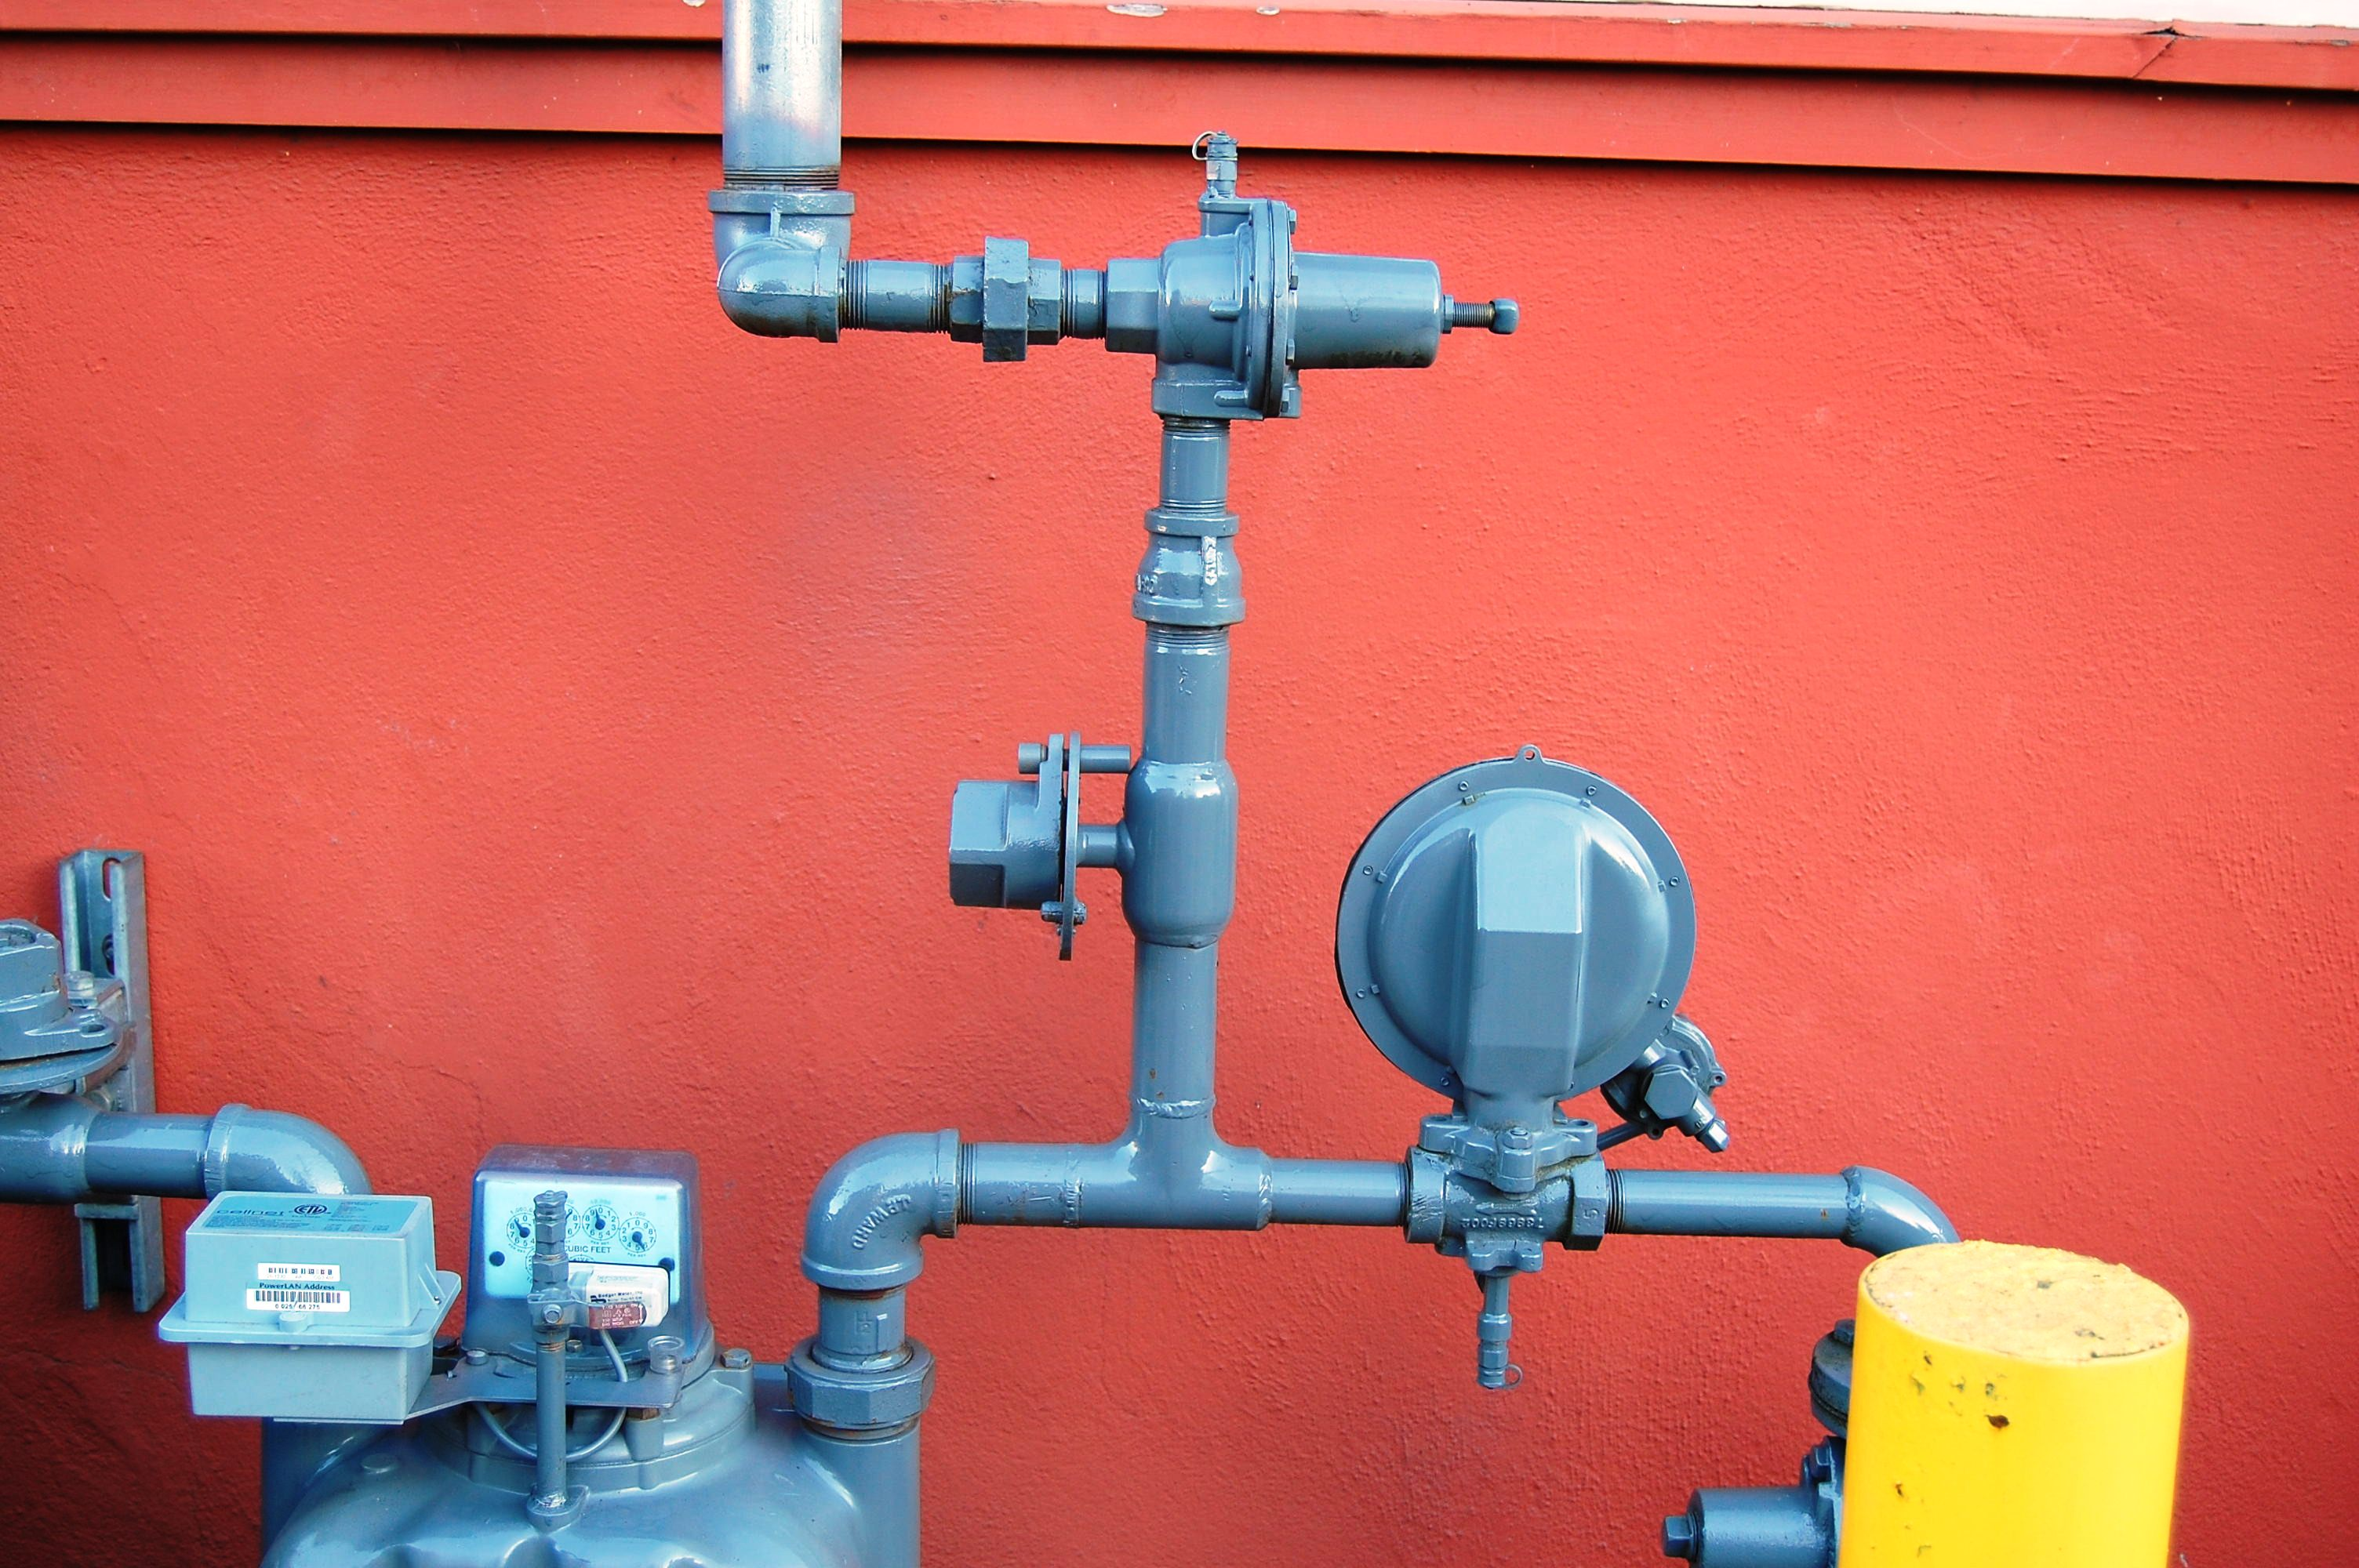 Gray pipes against an orange/red background